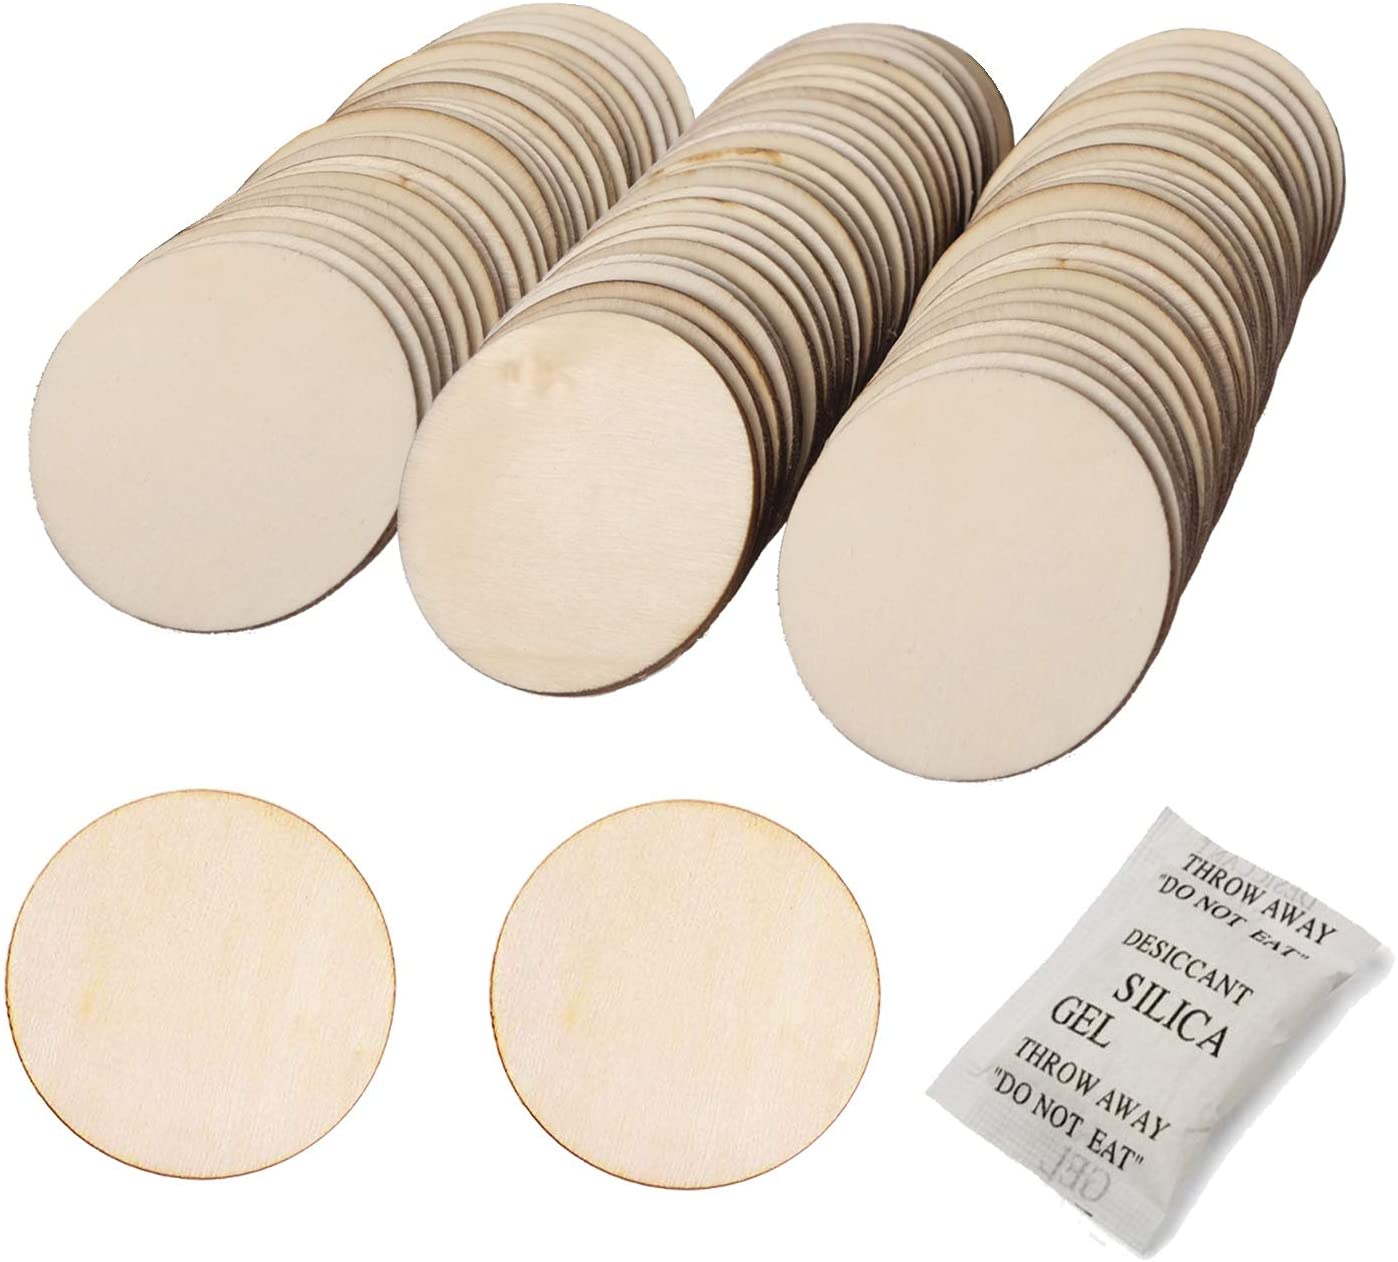 BEADNOVA Round Wood Circle Natural Unfinished Wooden Discs Plywood Circles Cutout for DIY Crafts (2 Inch, 50 Pieces)